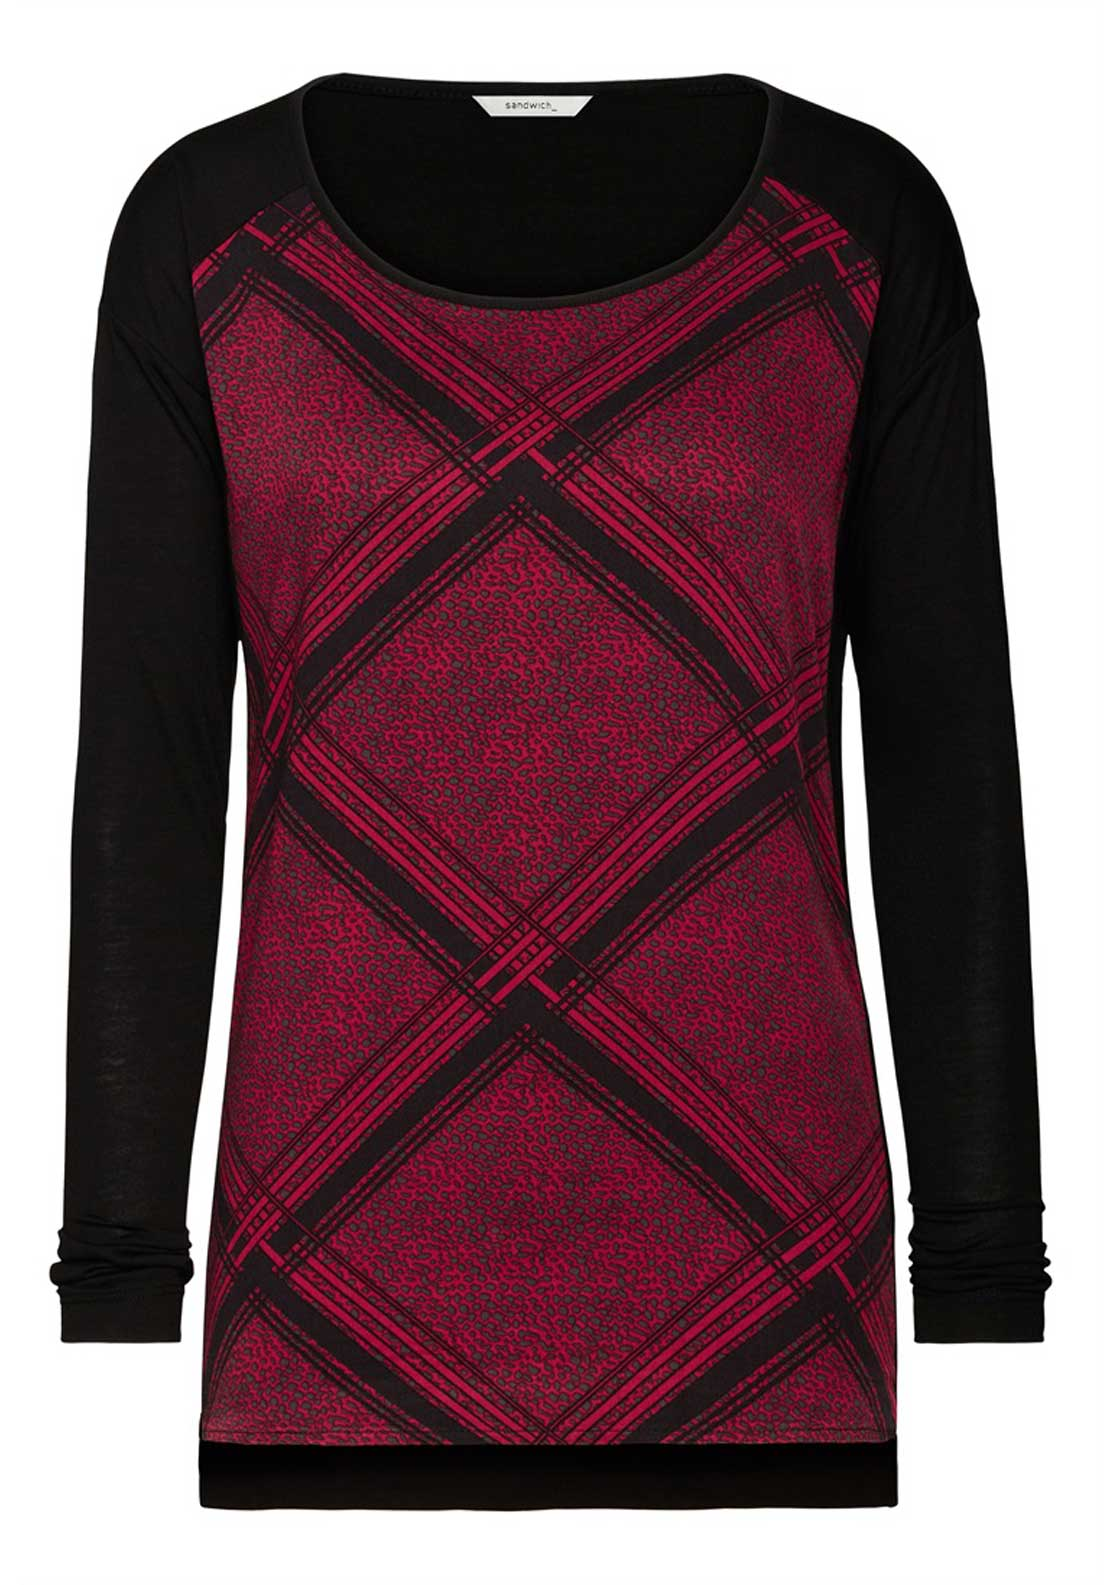 Sandwich Diamond Checked Long Sleeve Top, Black and Red